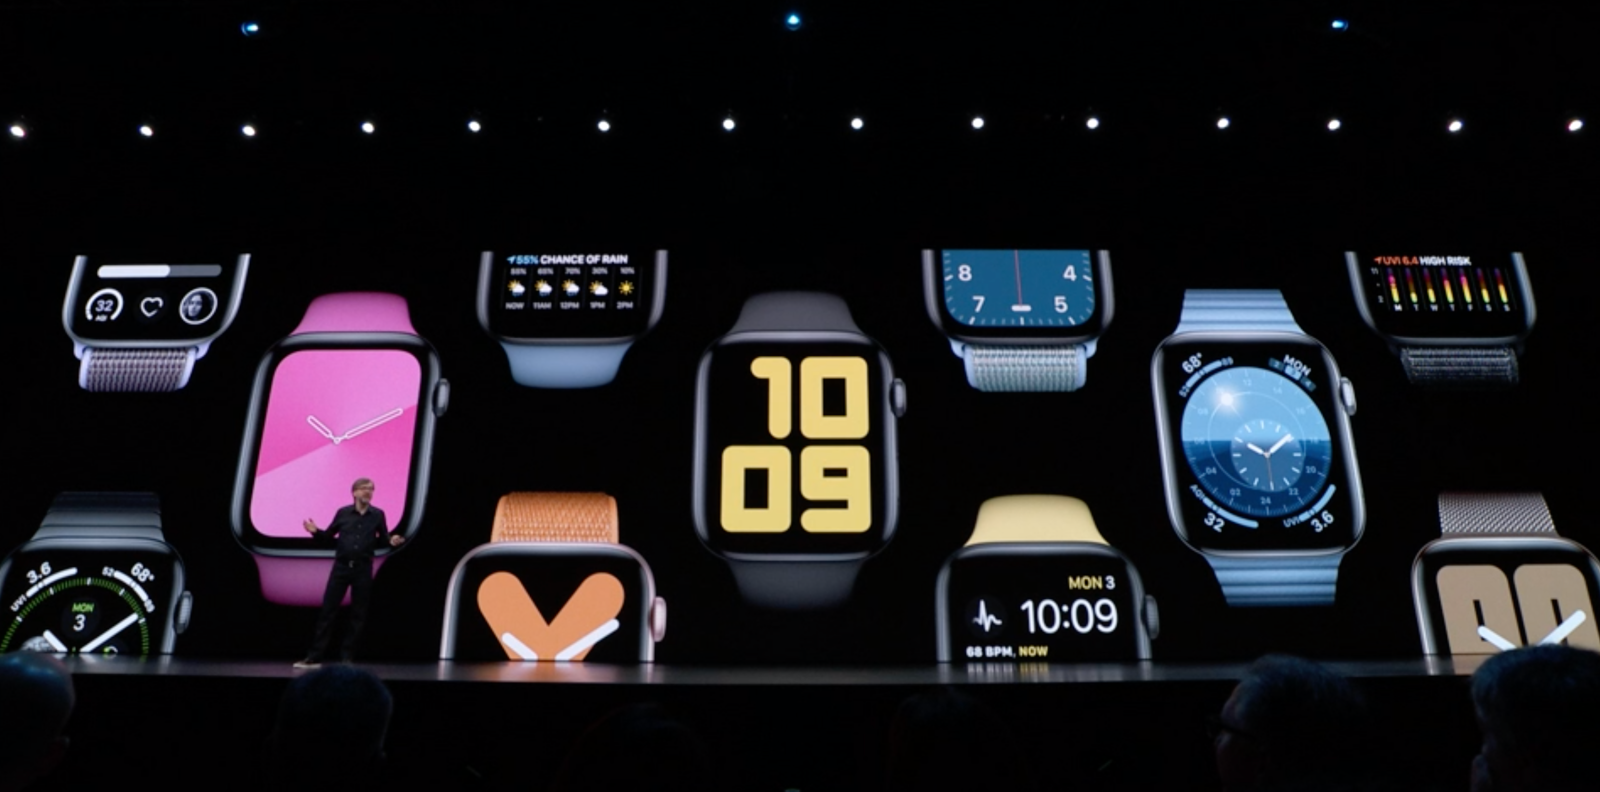 Apple officially announces watchOS 6 for Apple Watch with